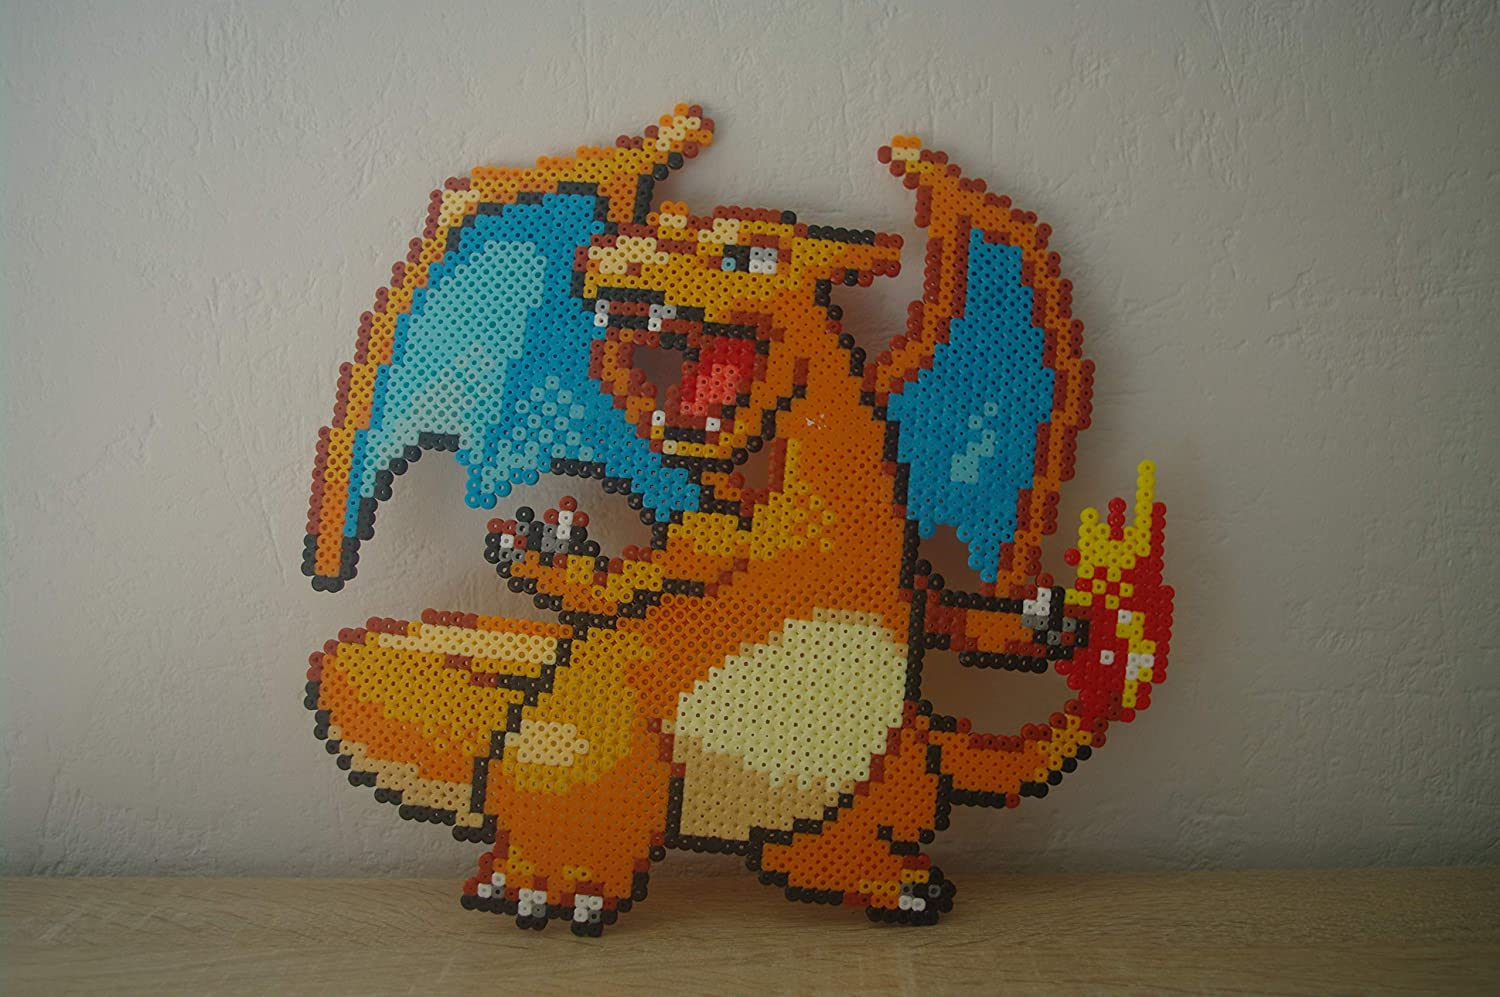 Sprite Of Charizard From Pokemon In Pixel Art Amazoncouk